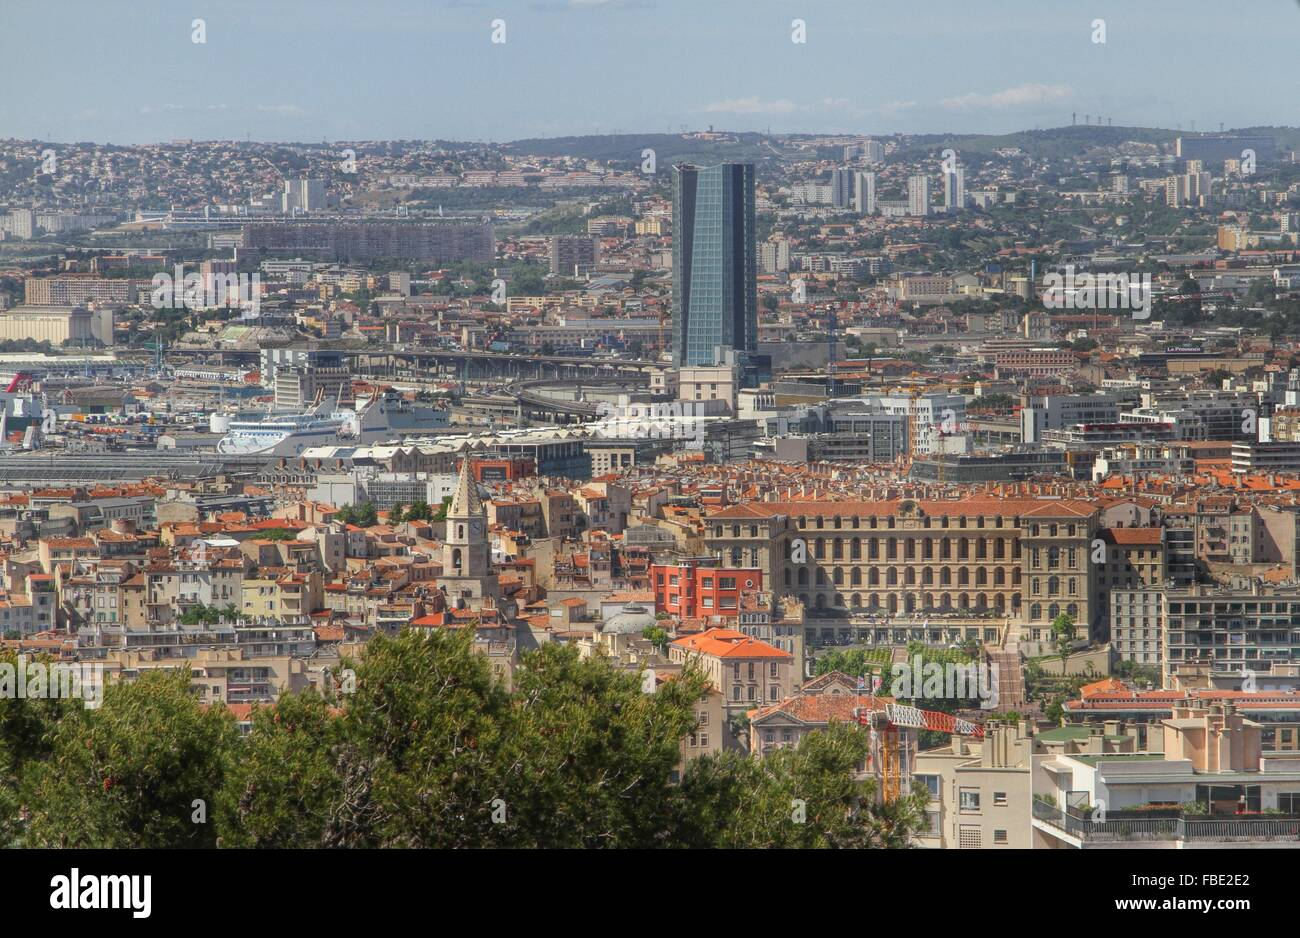 Cma Cgm Tower Against Sky Amidst City - Stock Image